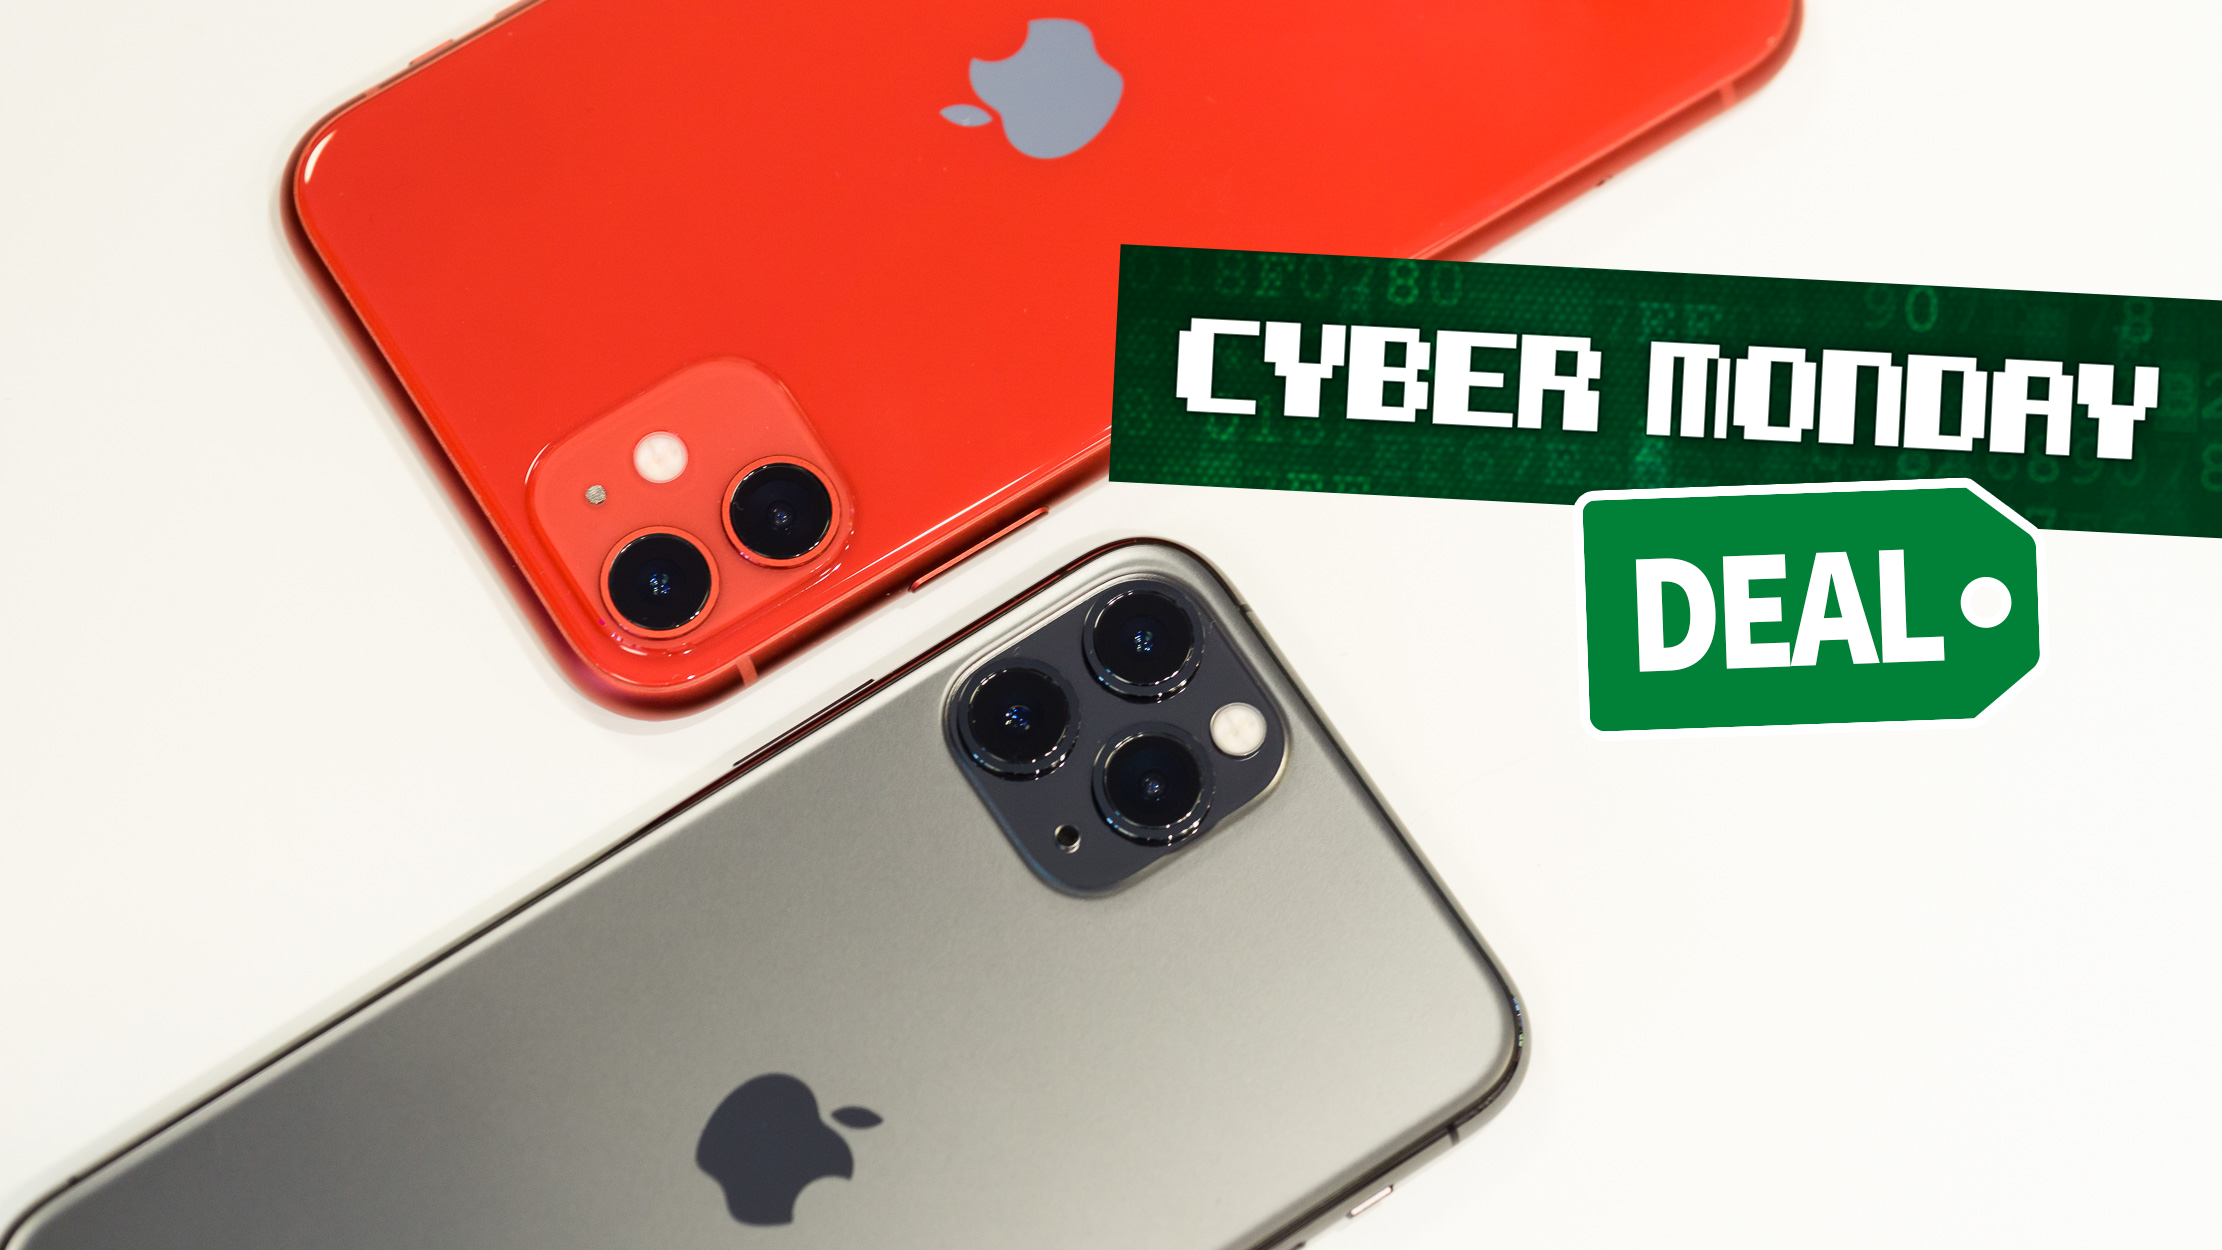 Cyber Monday Bei Apple Iphone Ipad Macbook Mac Auch Nach Black Friday Gunstiger